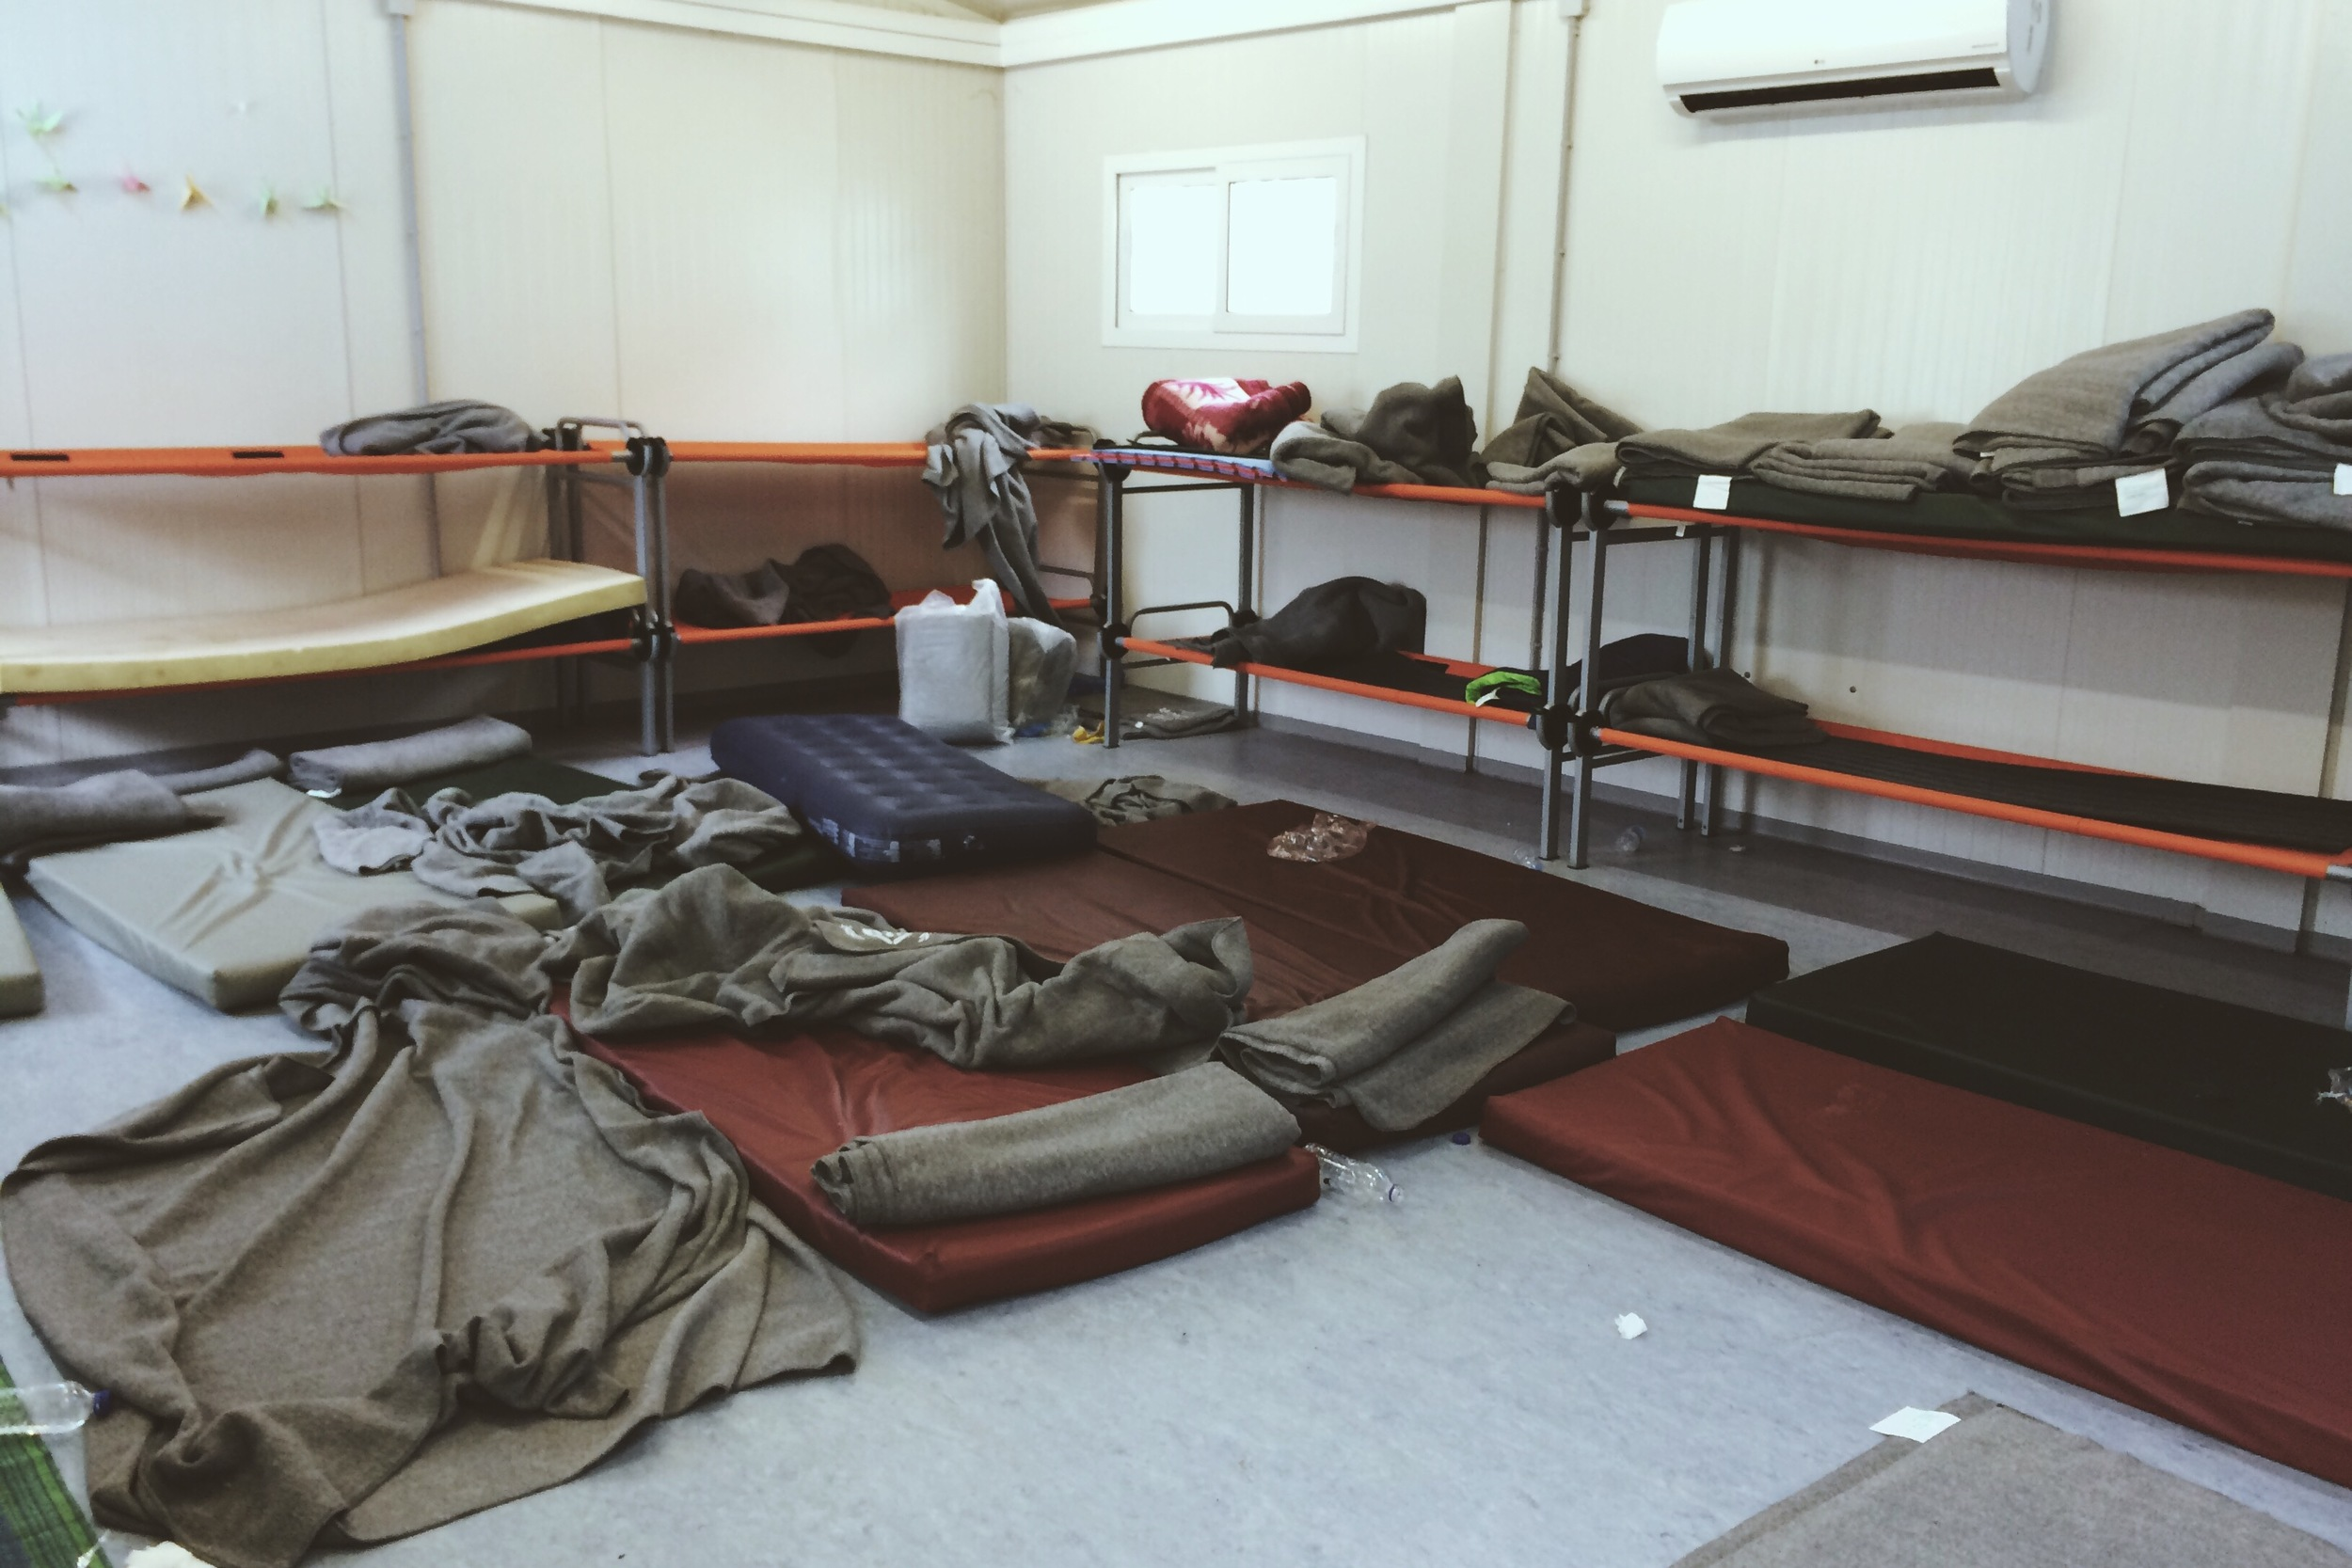 A family compound dorm room, the morning after.